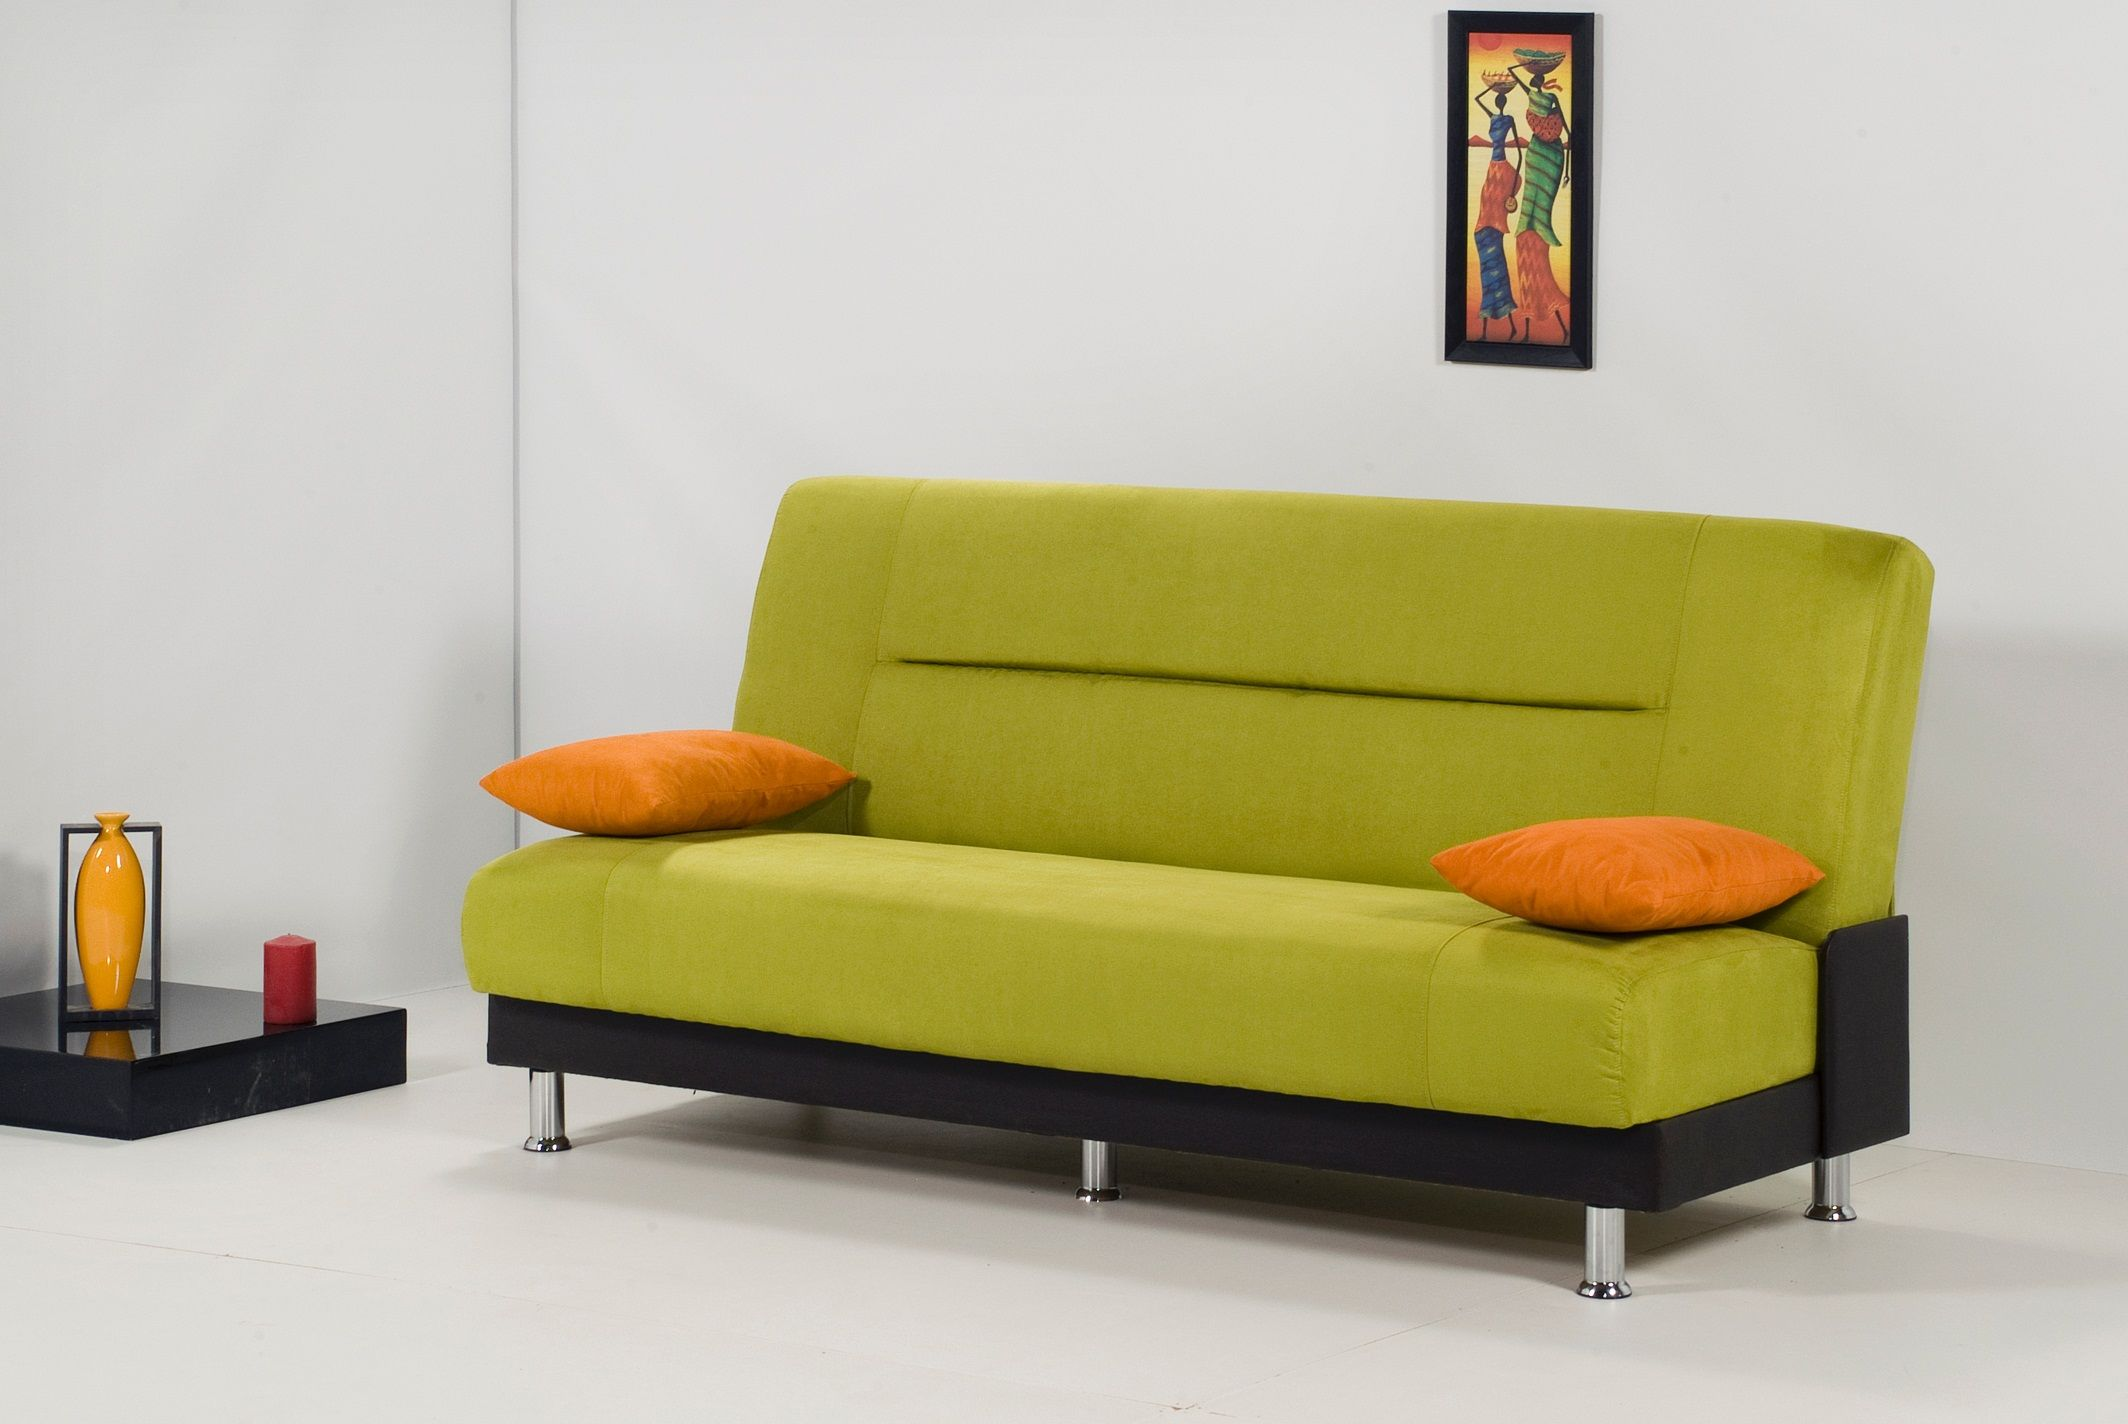 Peachy Modern Leather Couch Bed Beutiful Home Inspiration Truamahrainfo